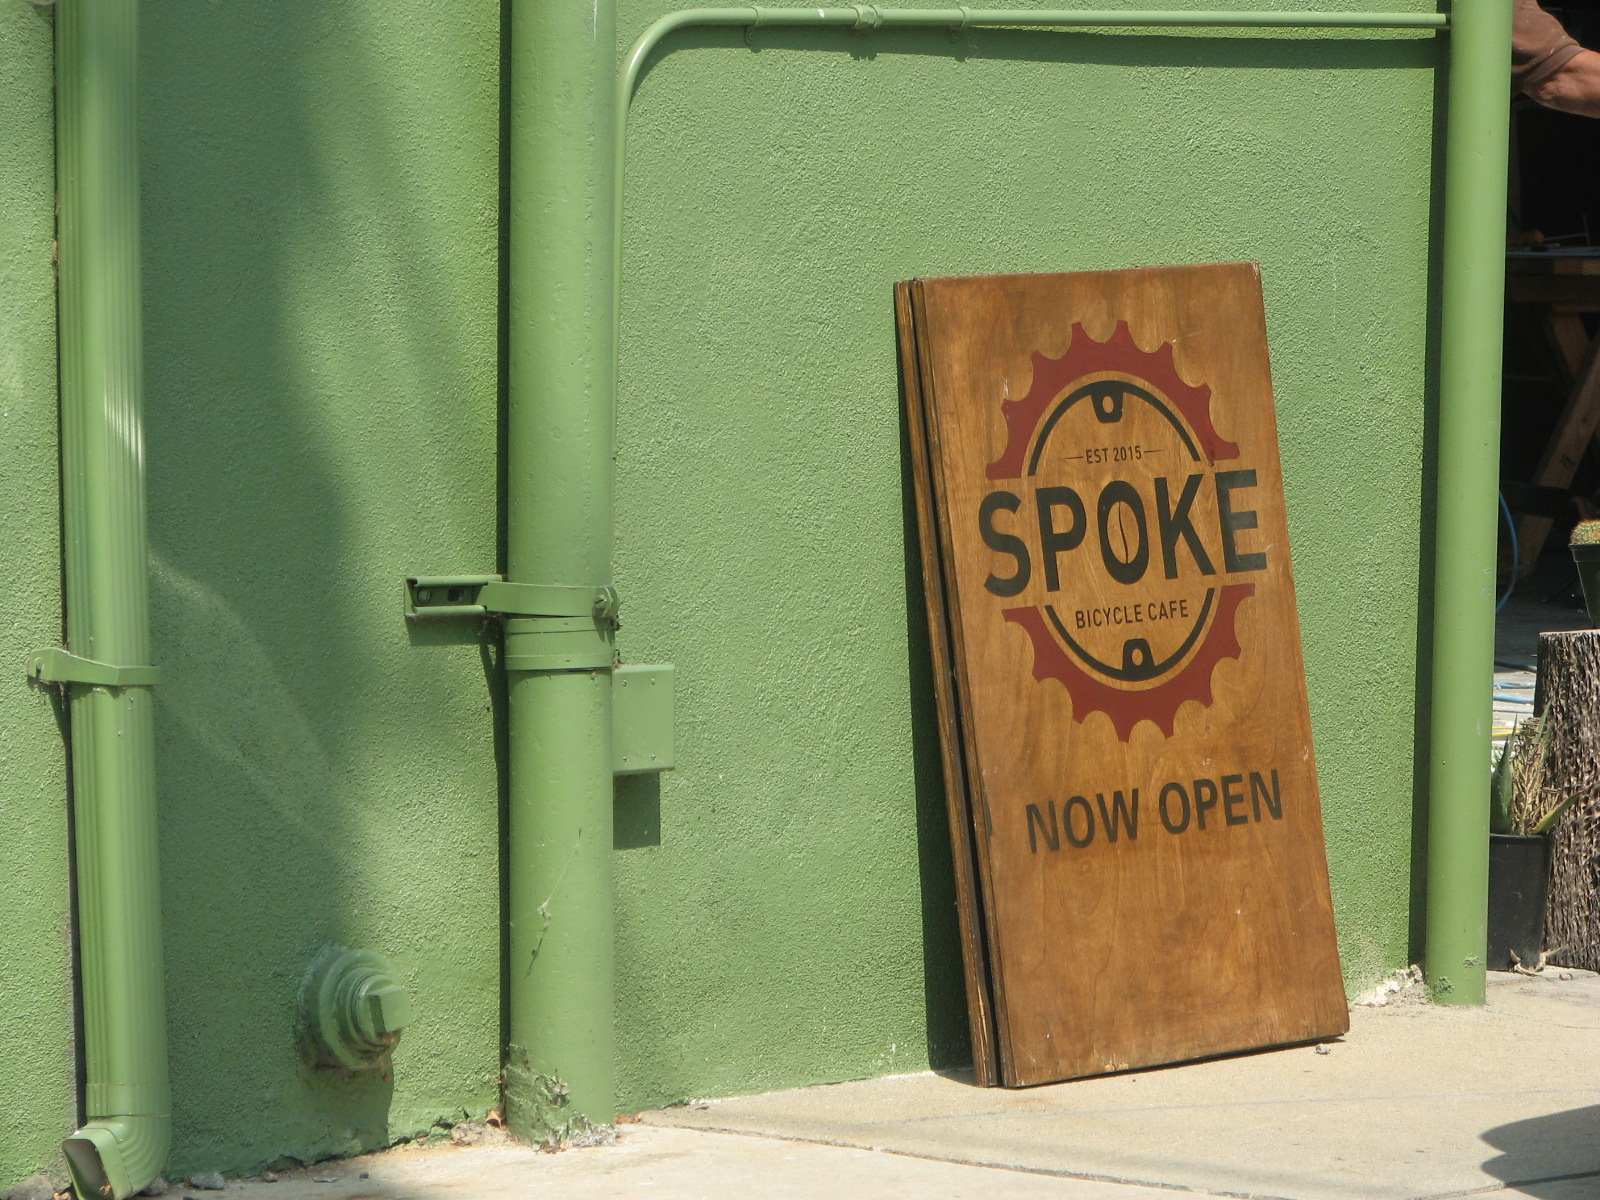 Spoke Bicycle Cafe, Los Angeles, California, United States